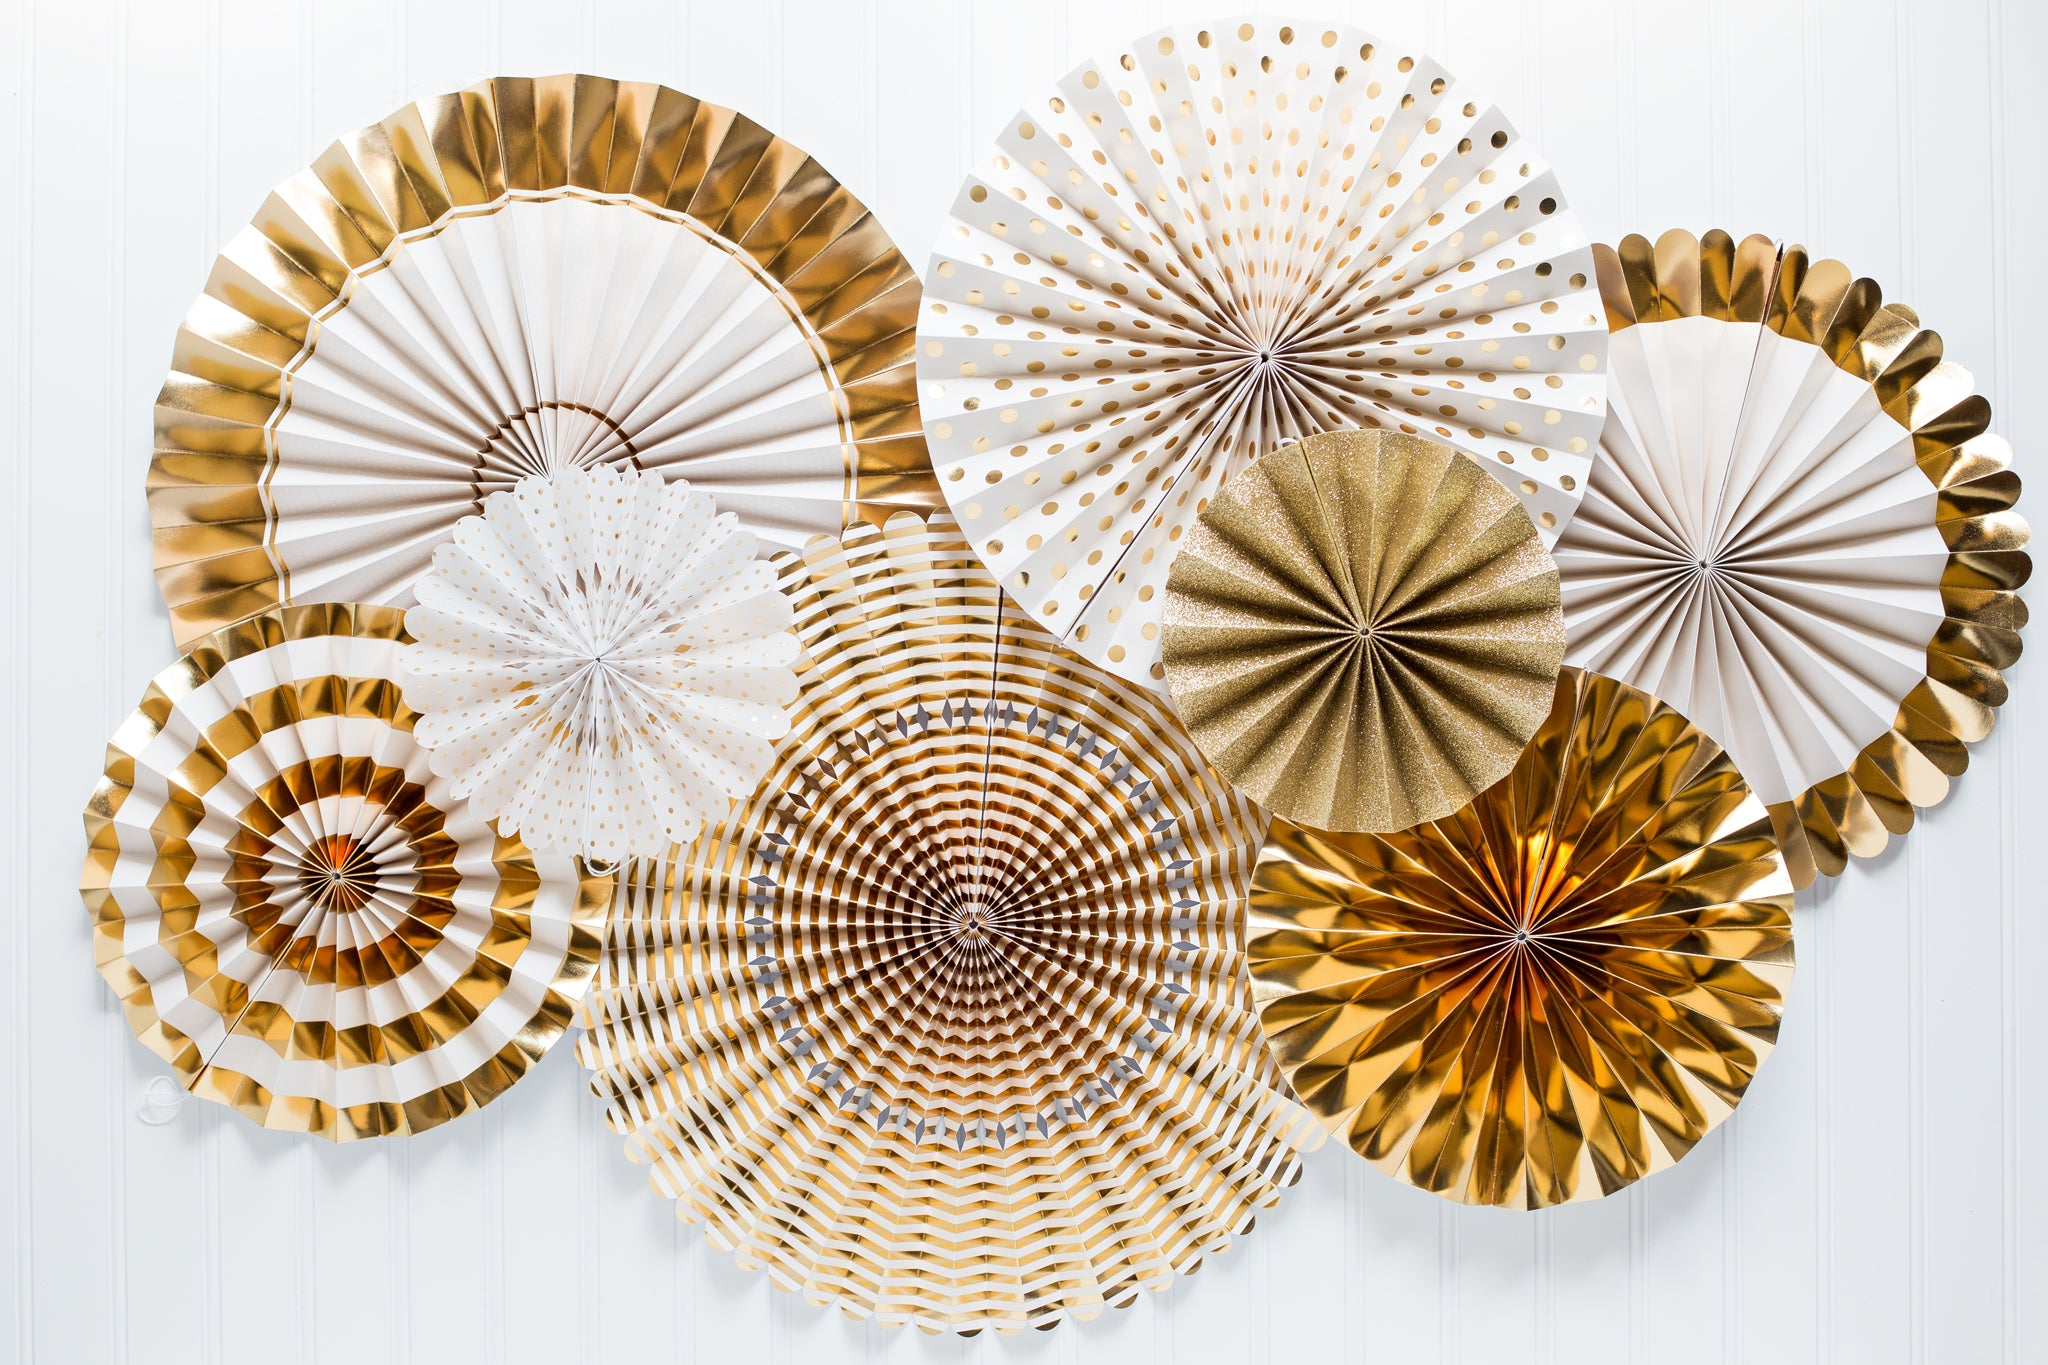 Gold Party Fans, Rosettes Backdrops for Birthdays, Baby Showers, Weddings, New Year's, and Anniversary